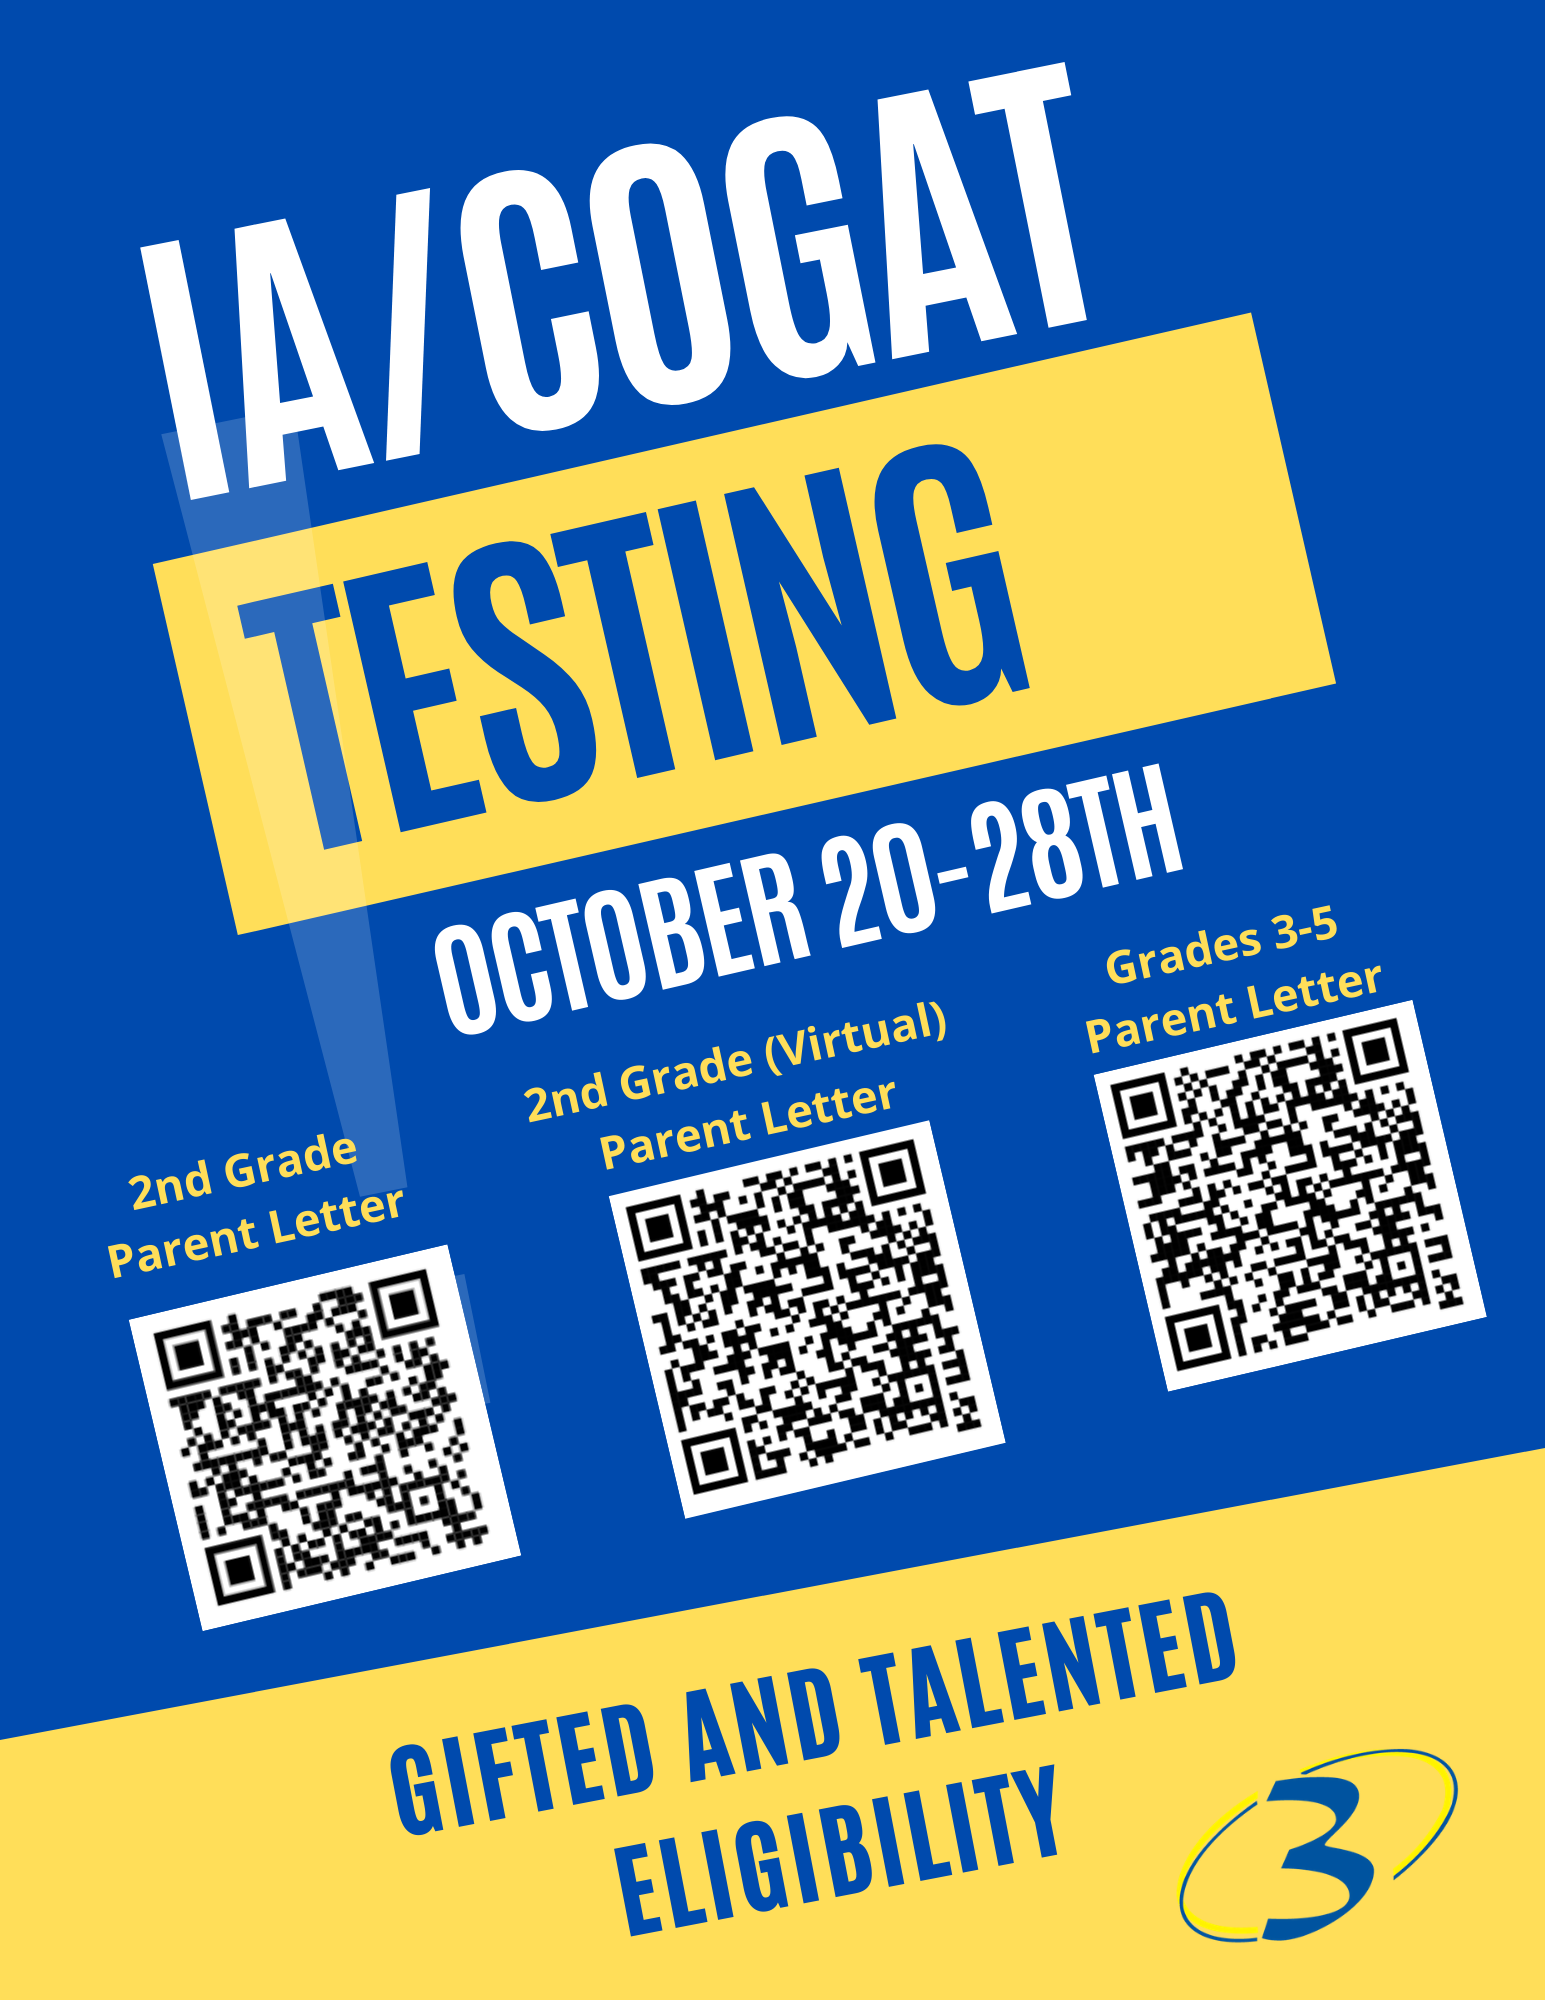 IA-CogAT testing information. Please email amyles@spartanburg3.org for an ADA friendly version of this PDF.